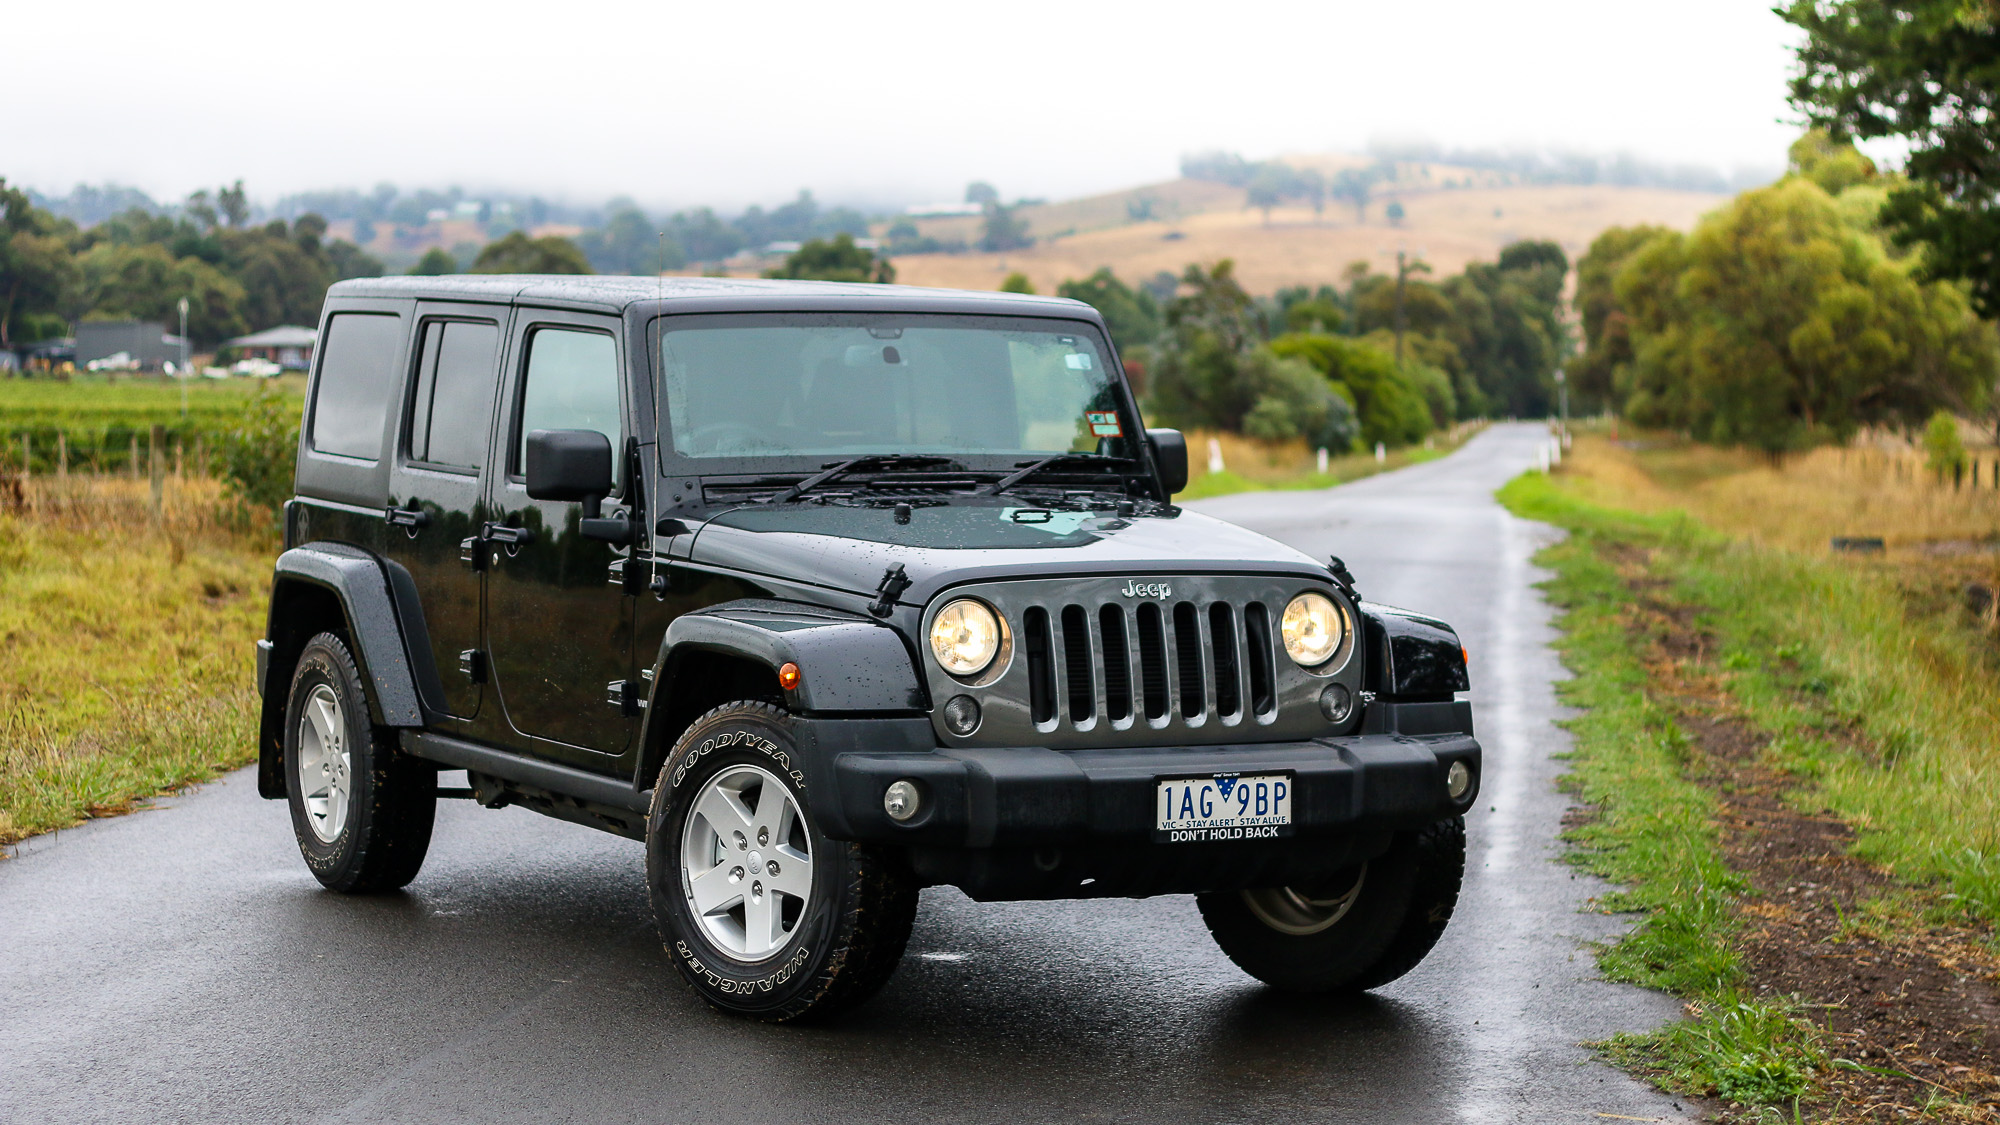 2014 jeep wrangler review freedom special edition. Black Bedroom Furniture Sets. Home Design Ideas